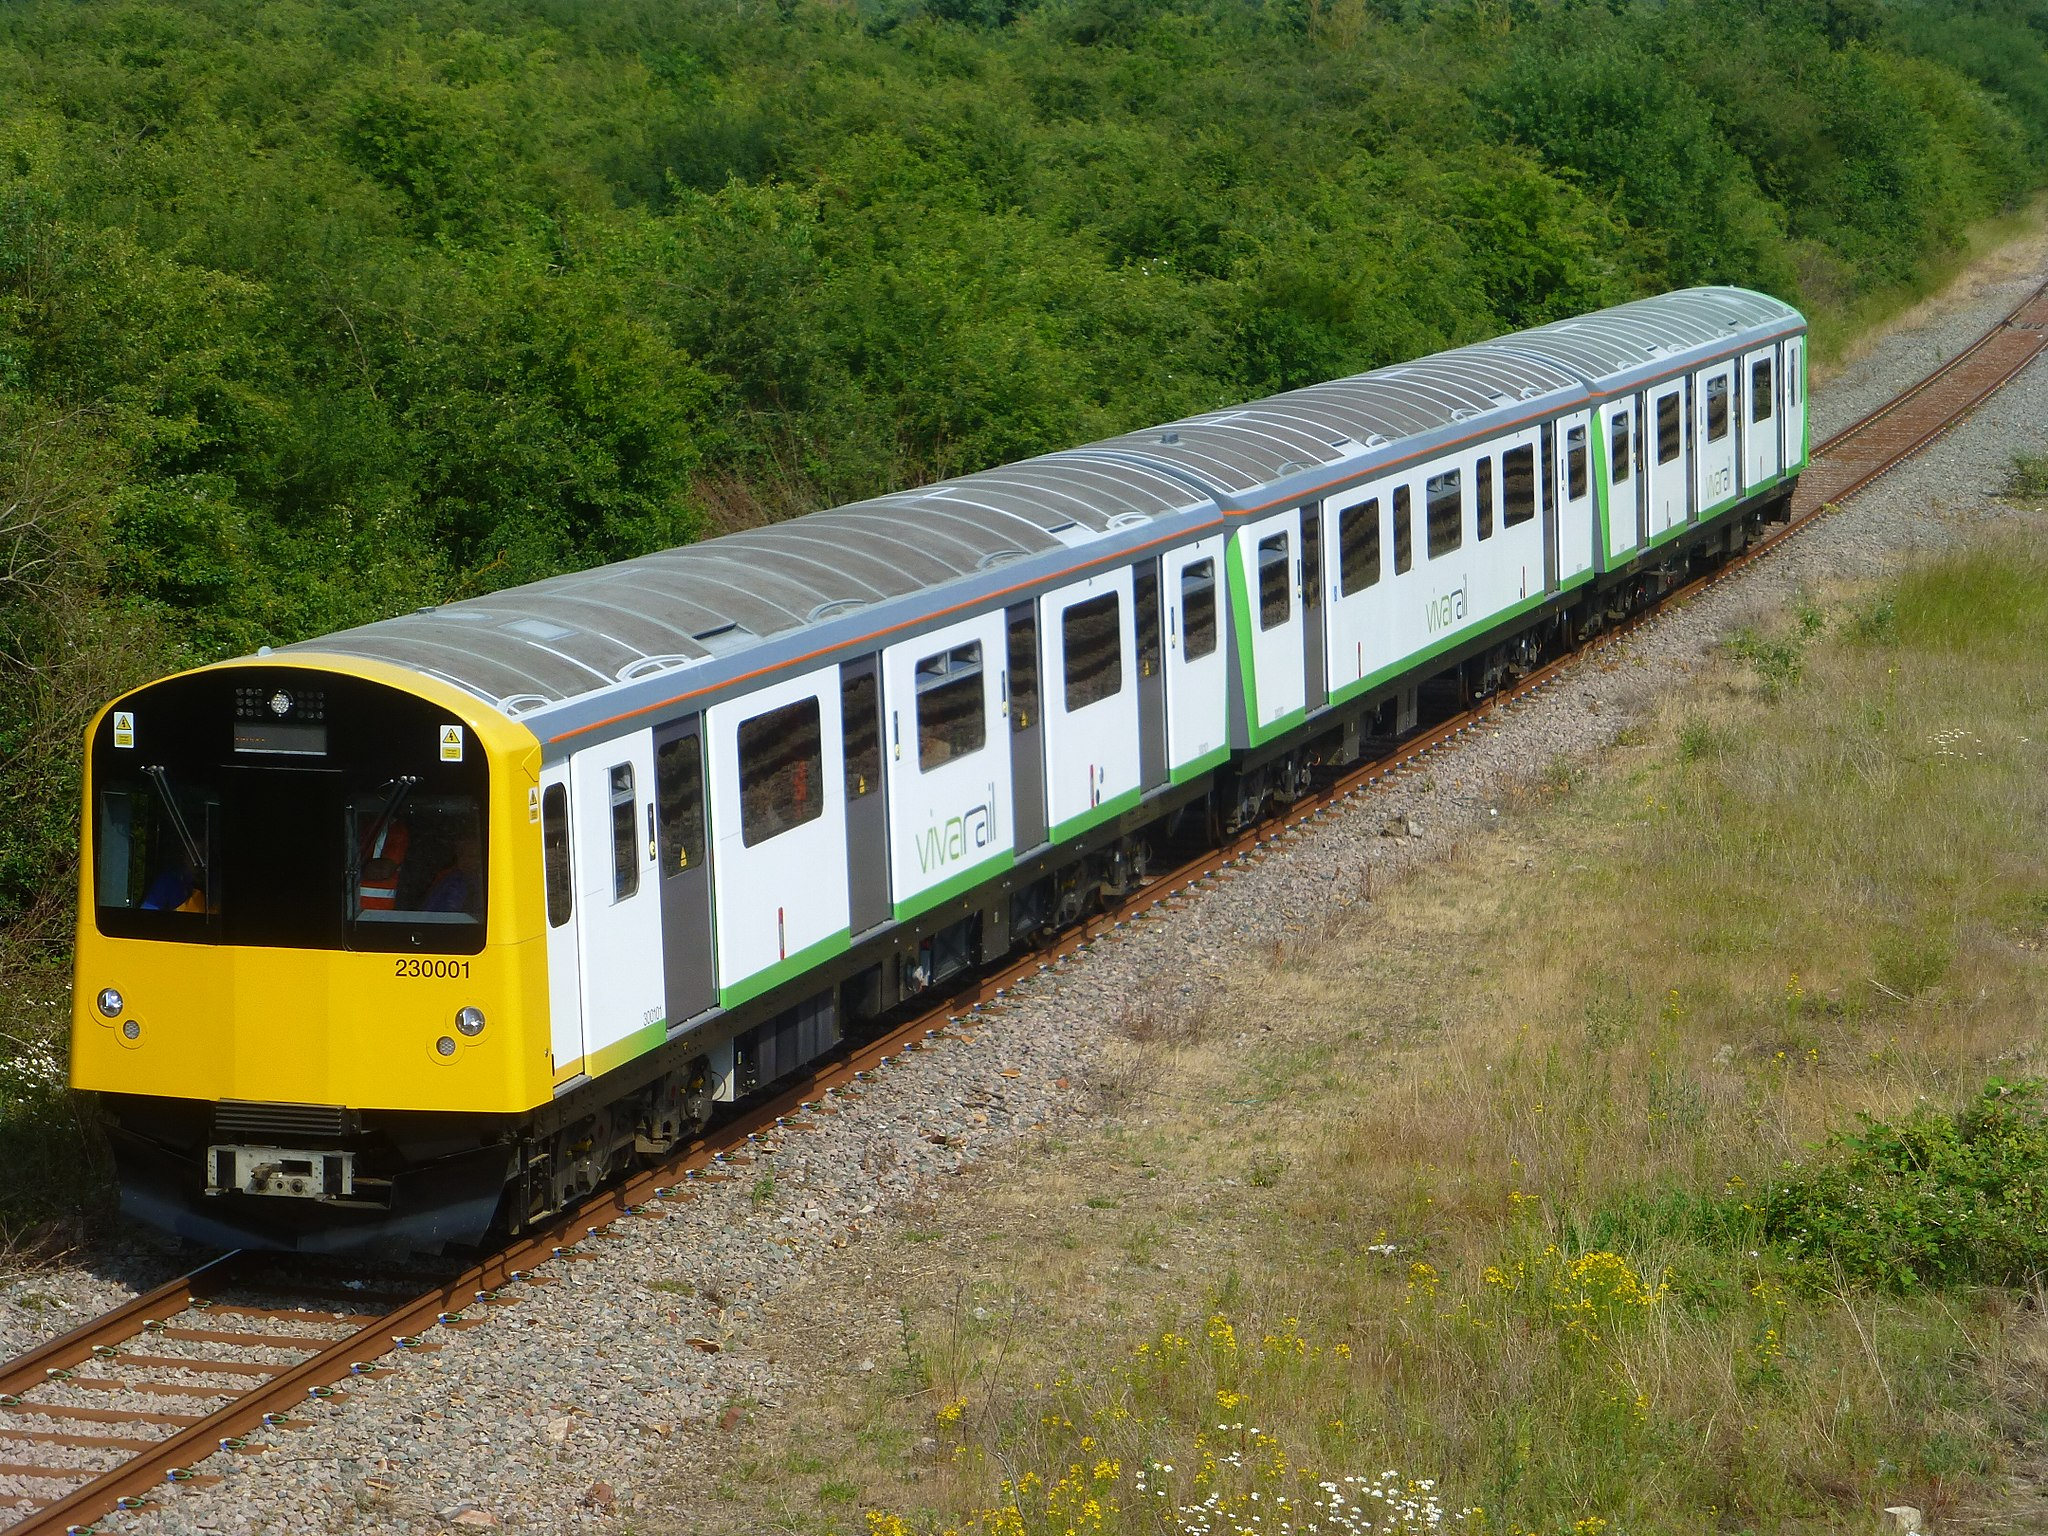 2048px-D-Train-203001-Approach-Honeybourne-P1410129